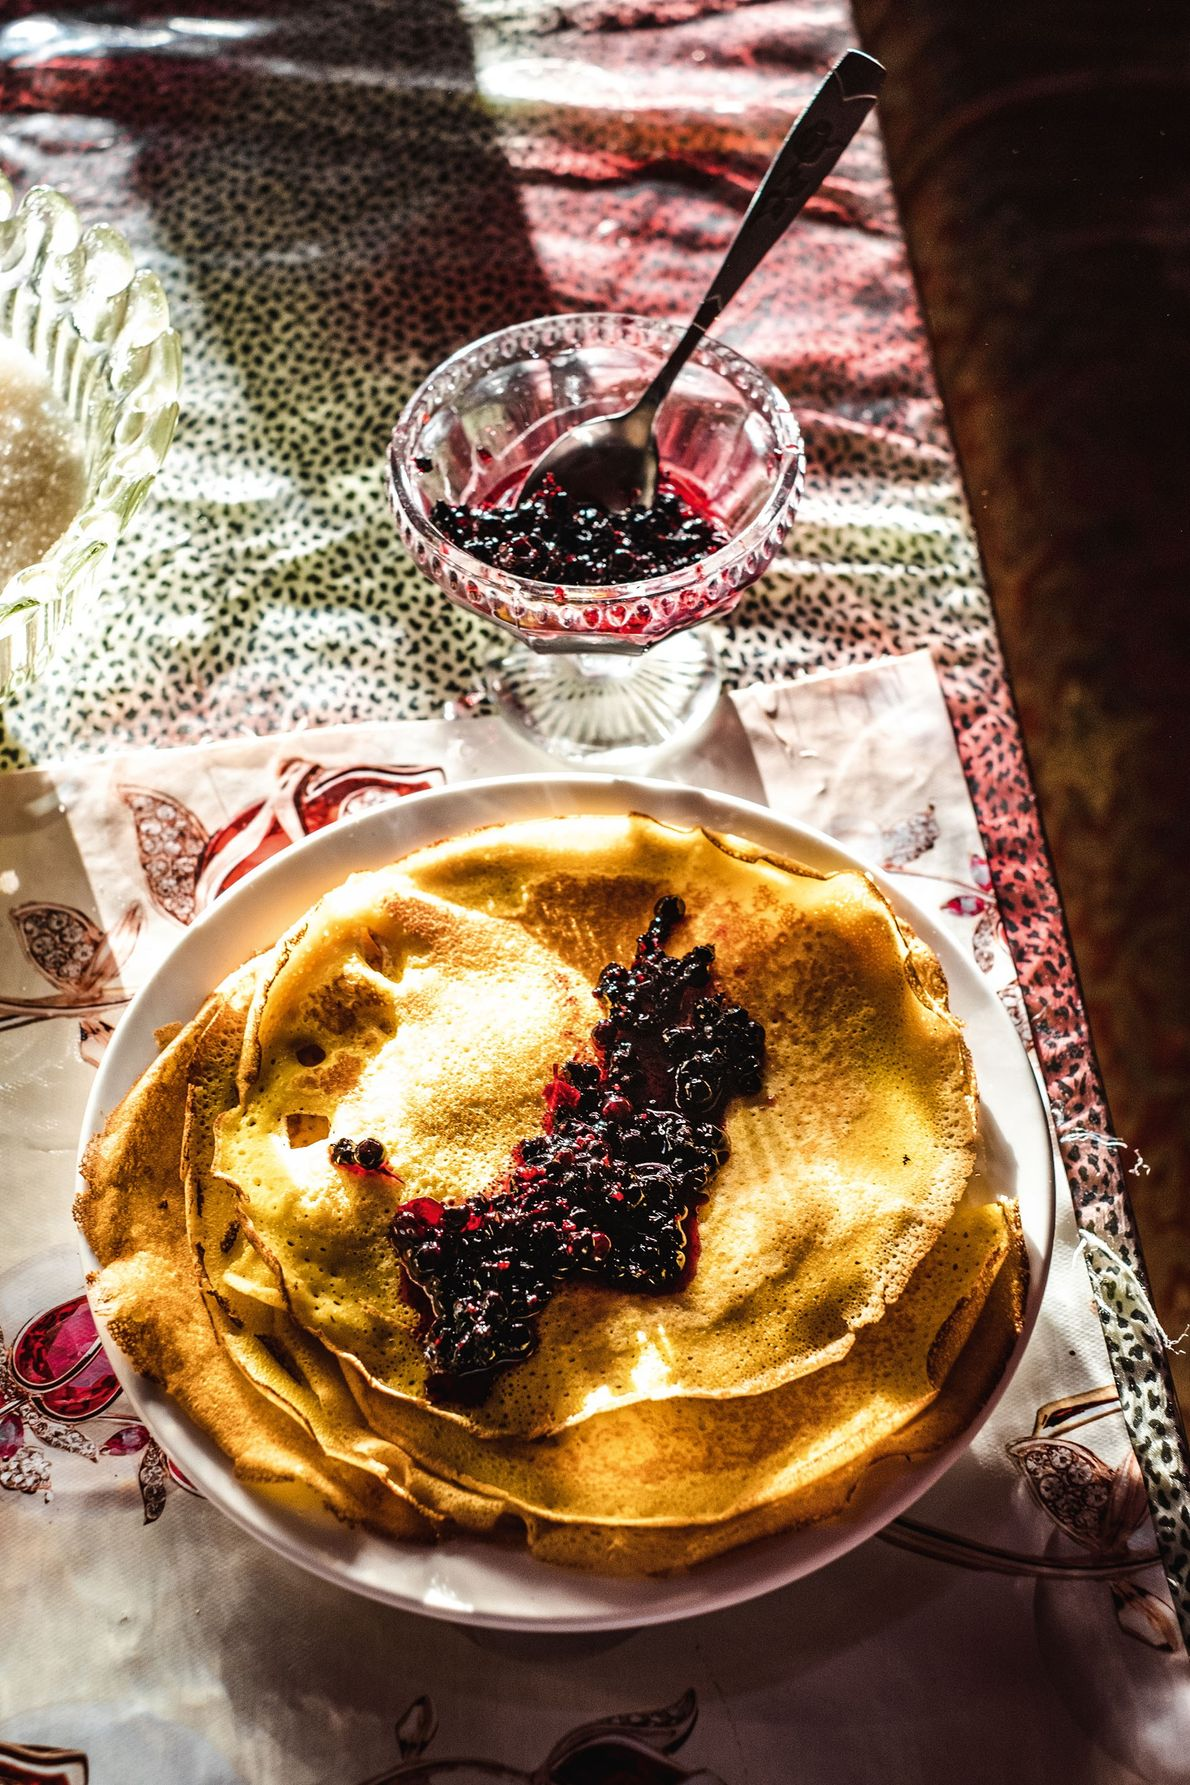 Breakfast is served — a steaming pile of crispy Russian blinis, served with tart homemade jam ...